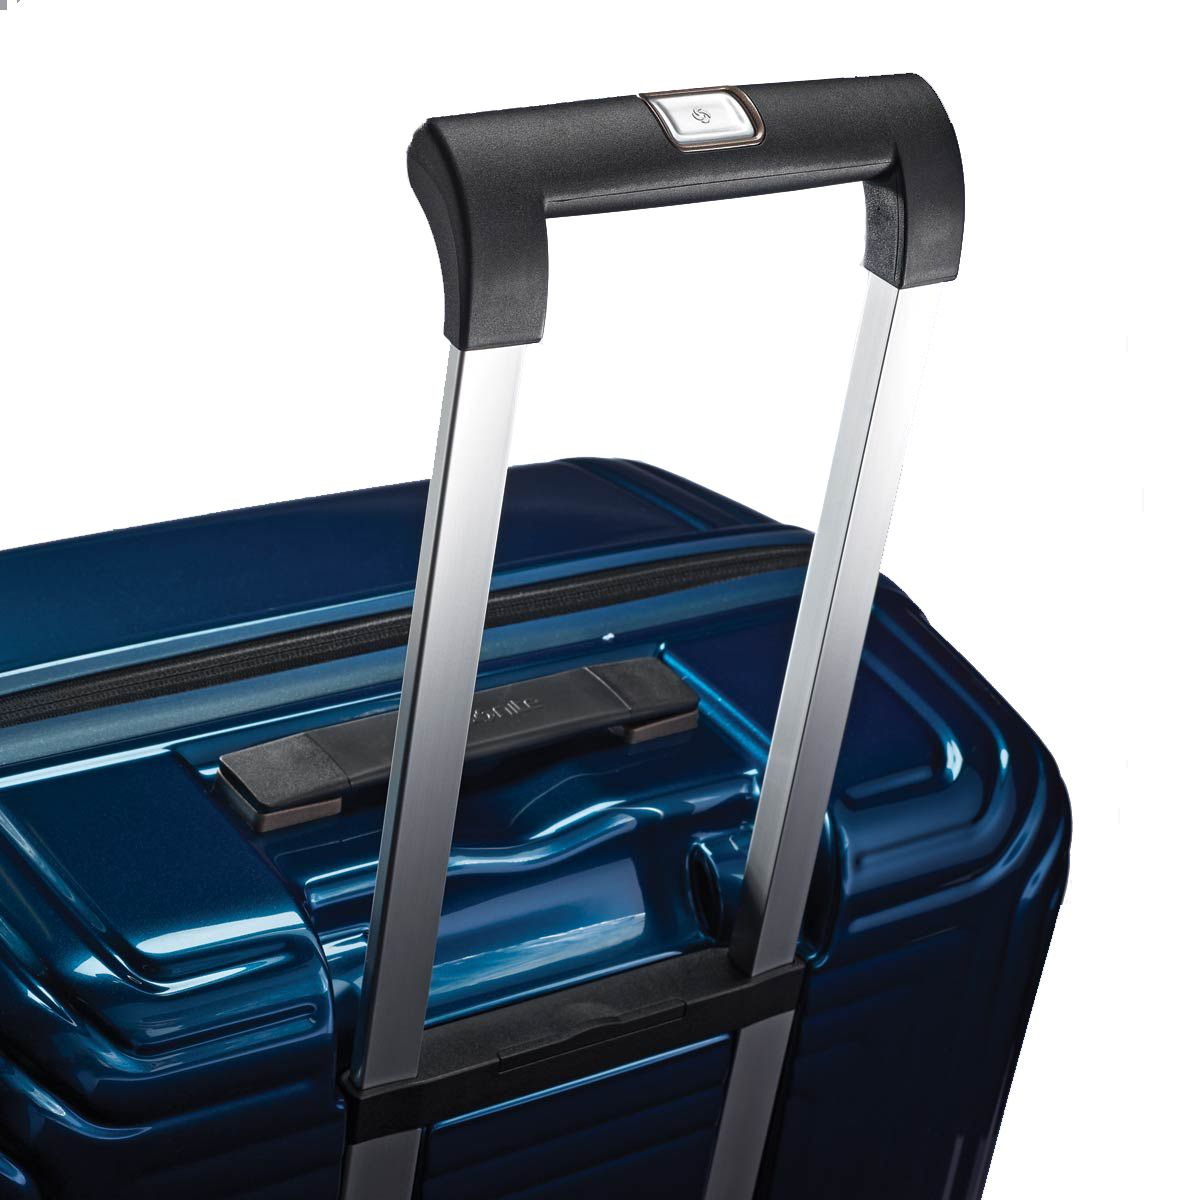 With Samsonite Neopulse, Samsonite once again managed to redefine ...